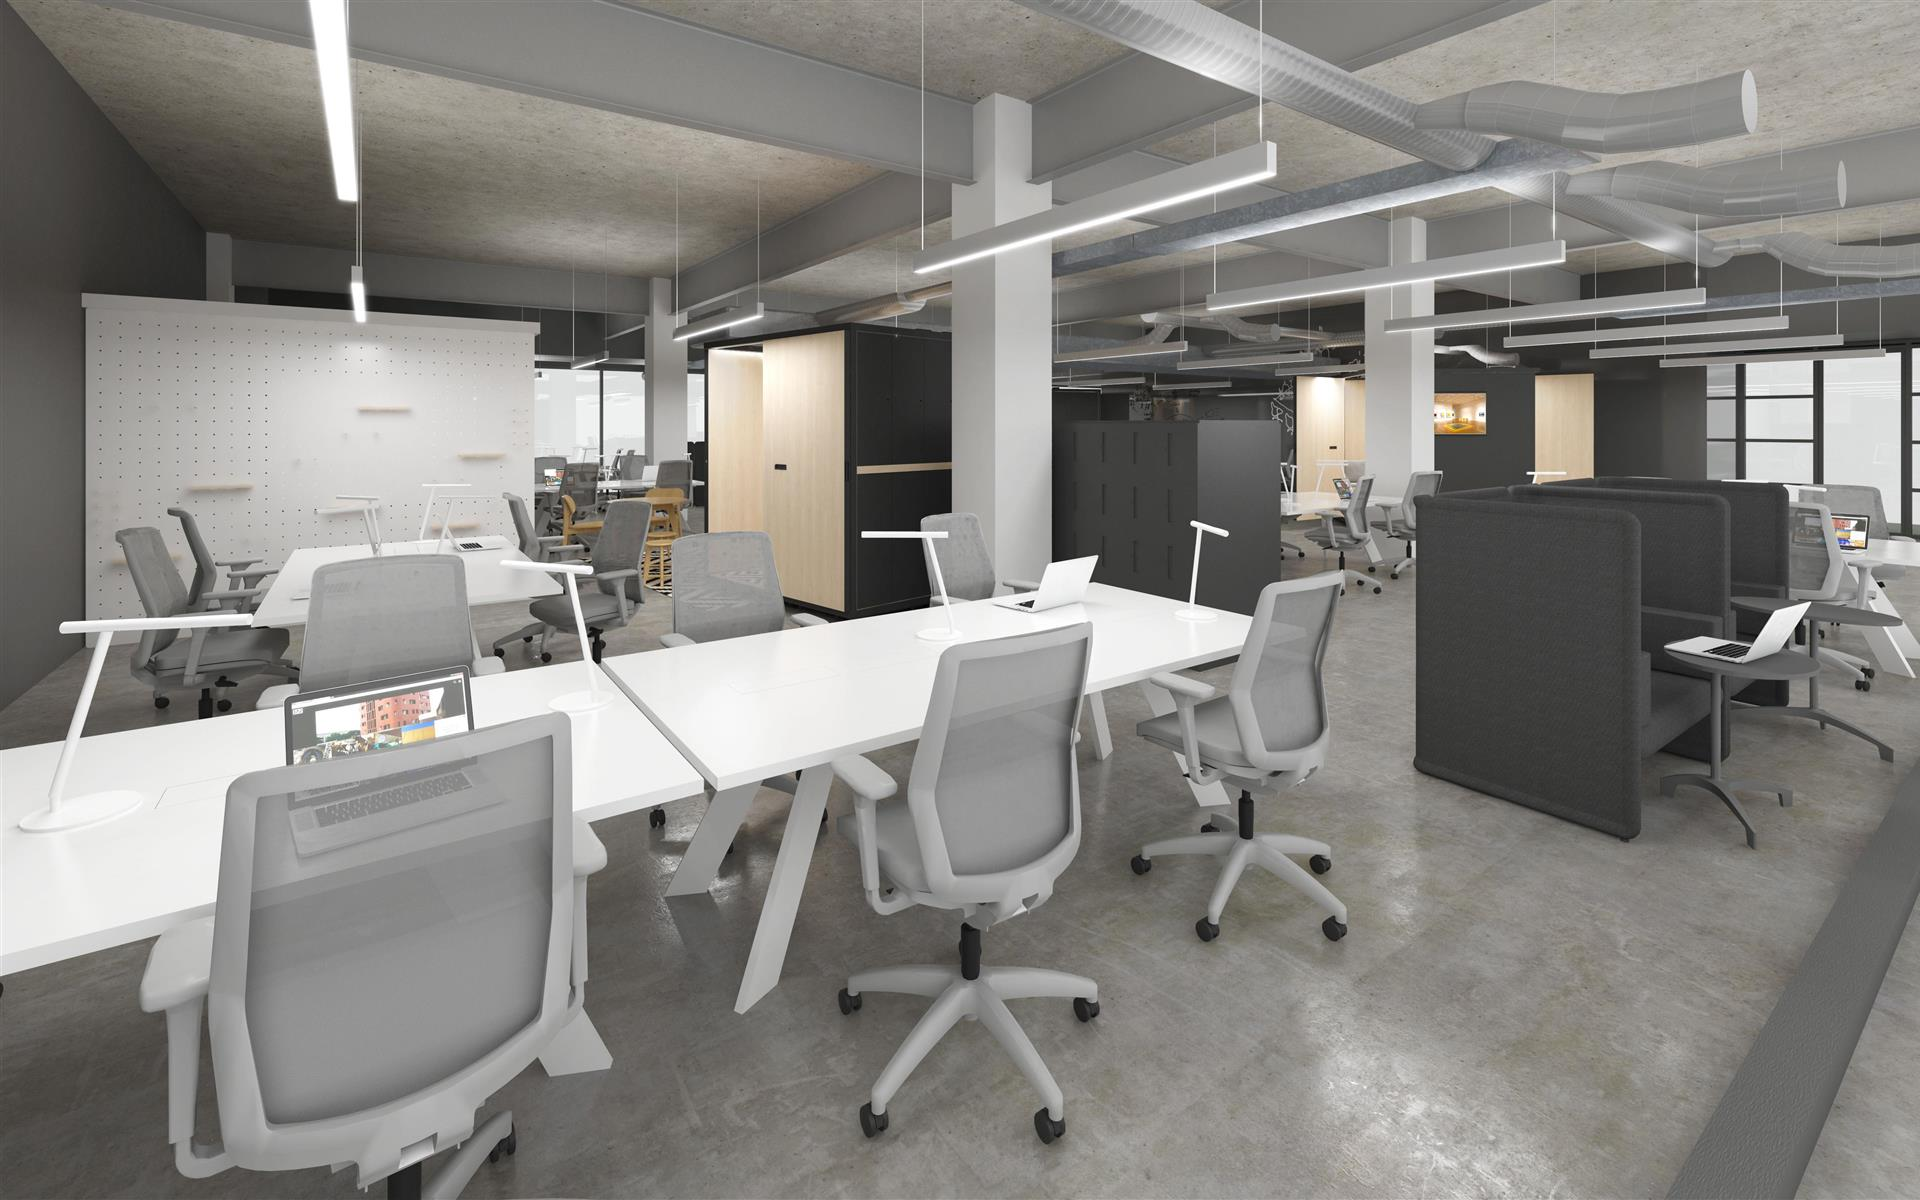 altSpace | Chicago - altspace for 20